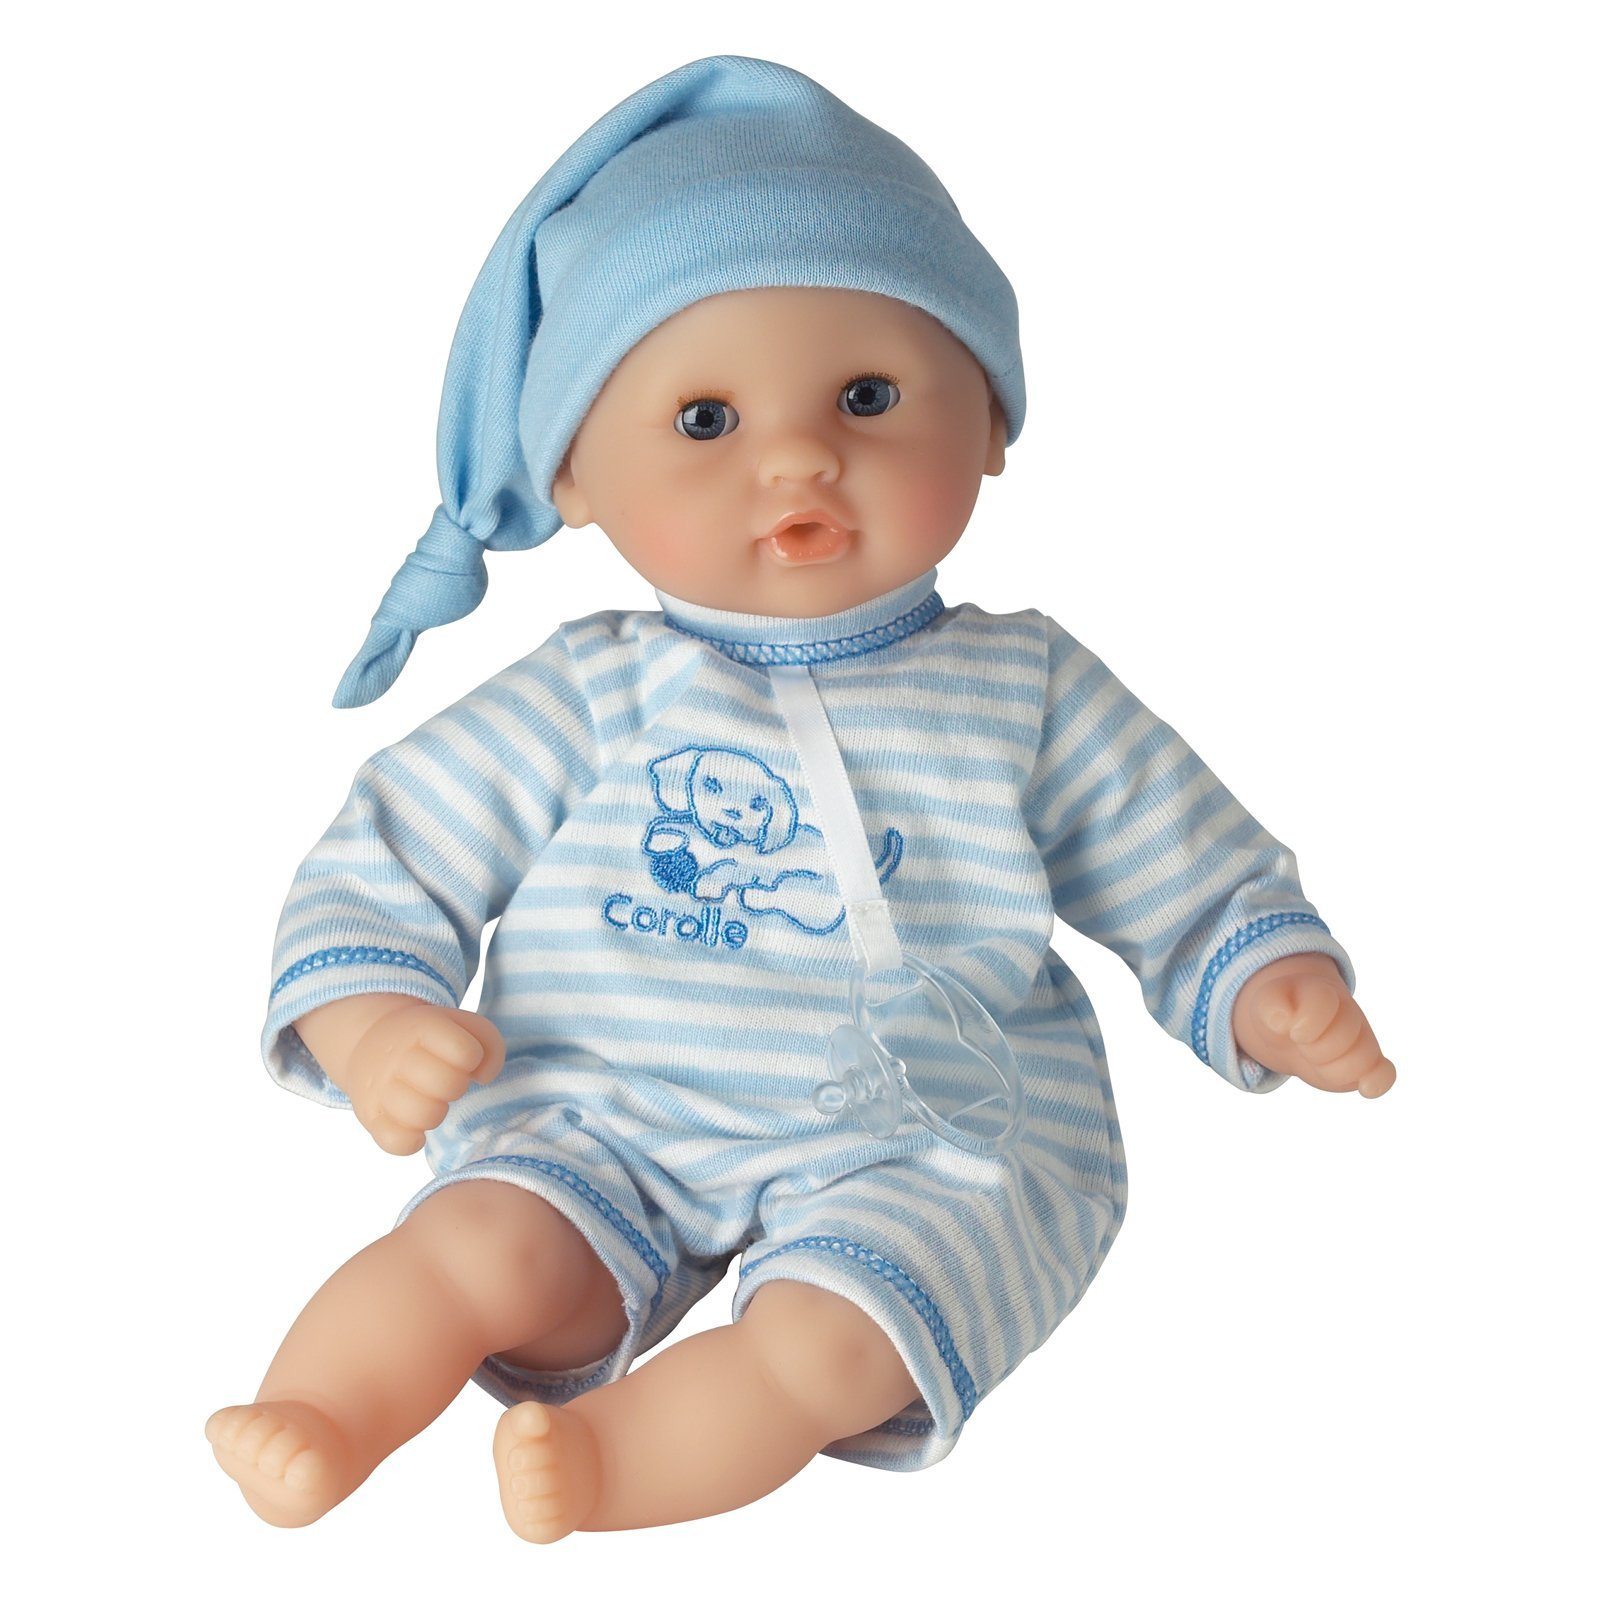 Corolle: Mon Premier - Calin Sky Baby Doll image